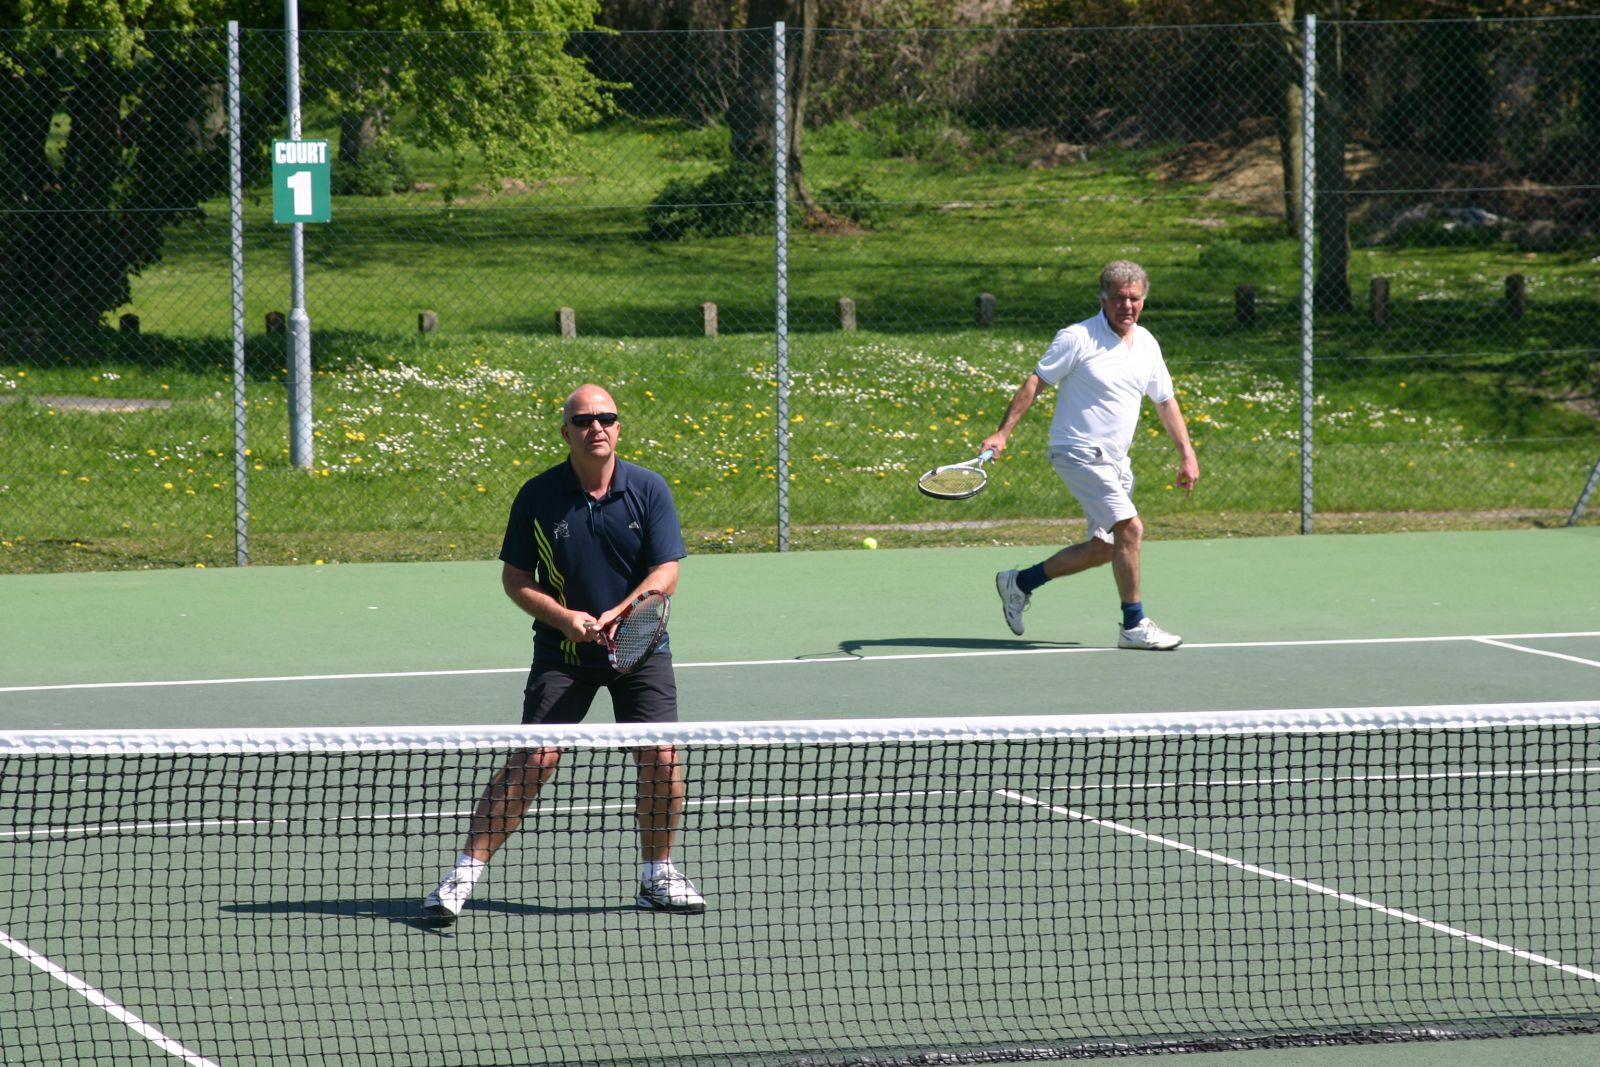 Richard Gracie & Roger Welch - May 2013